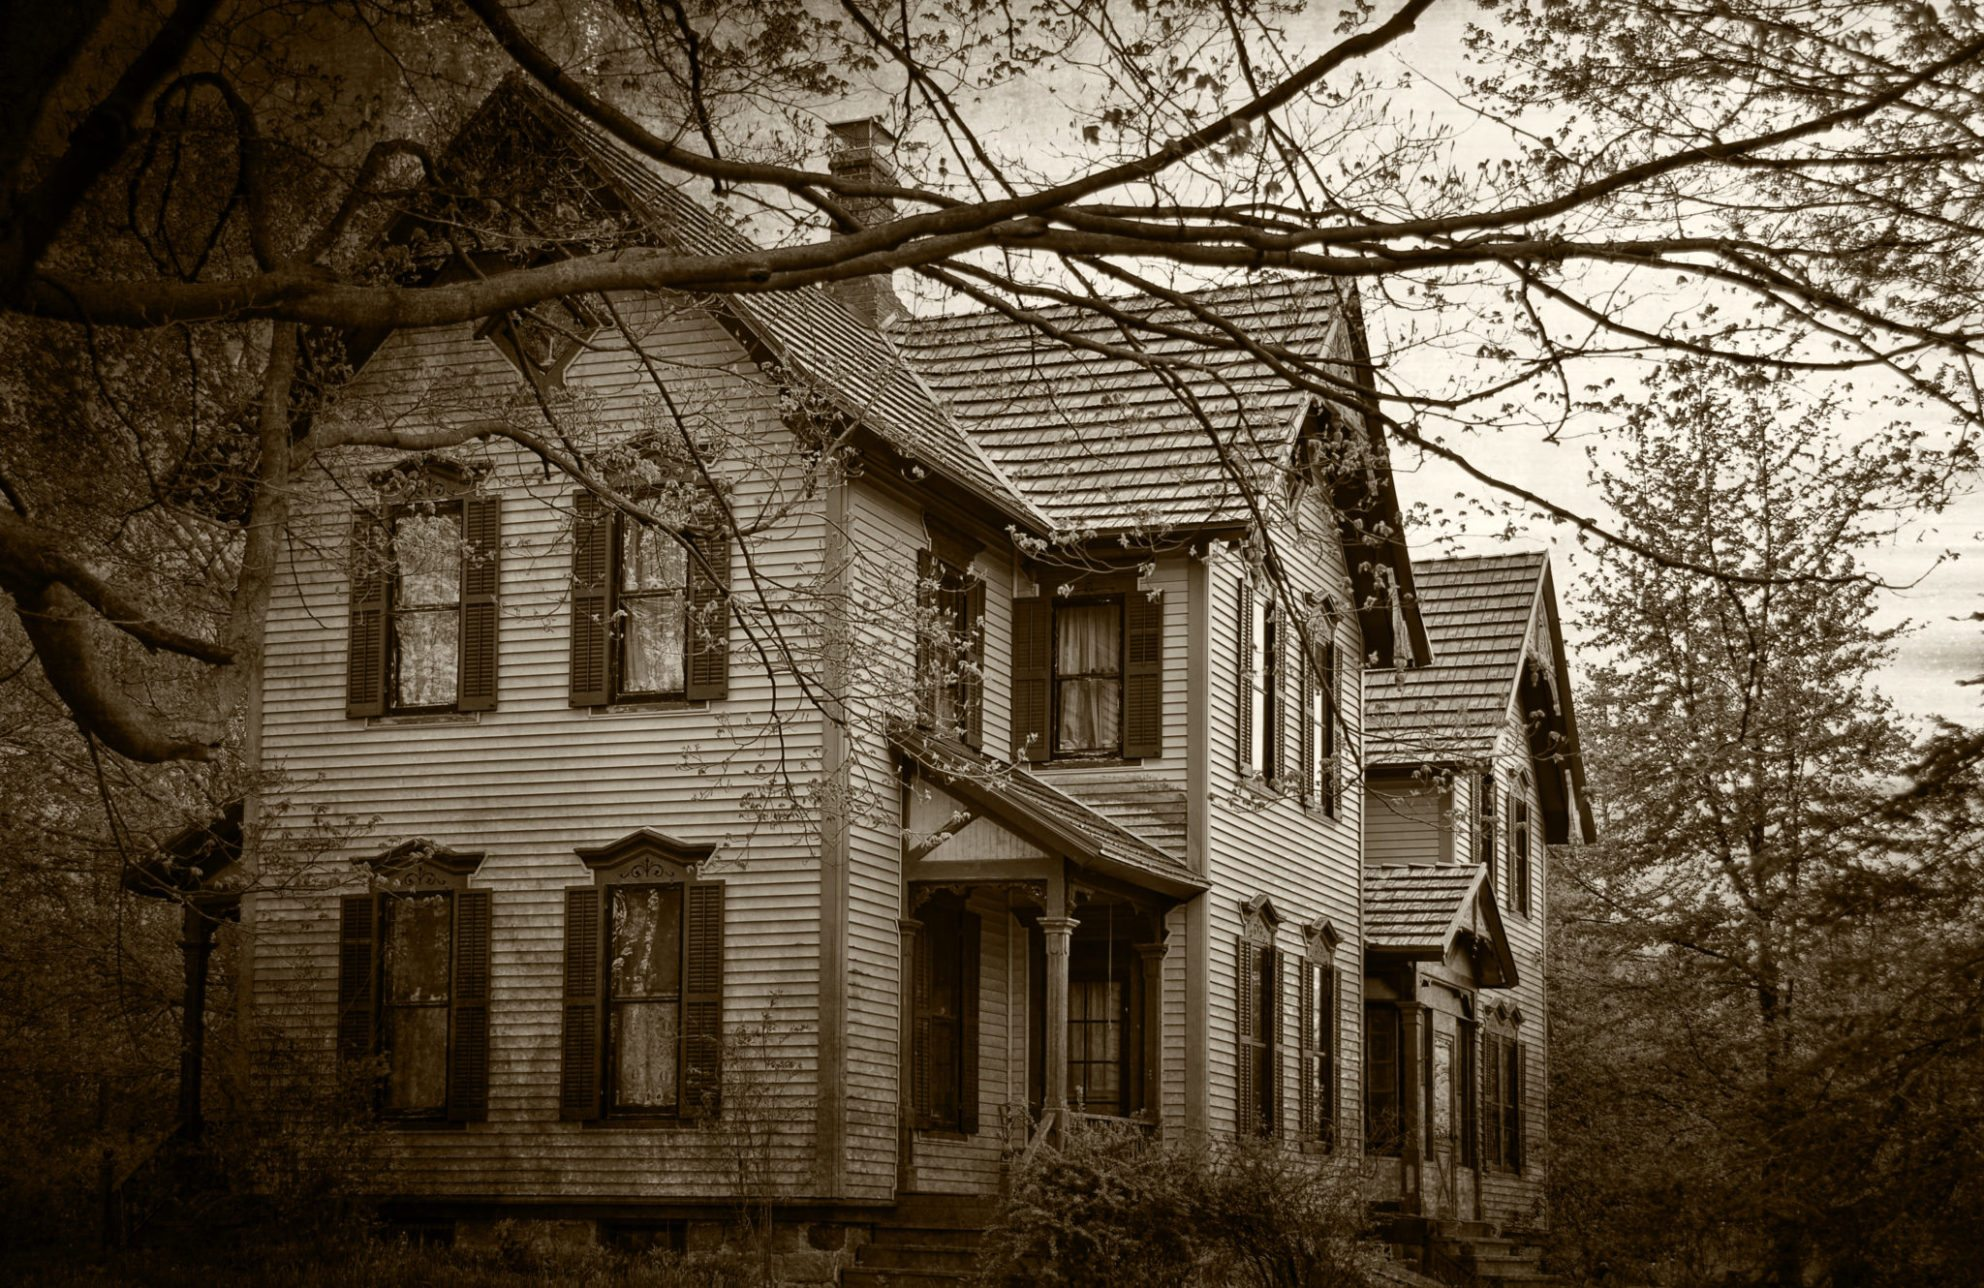 Haunted real estate: Realtor recalls frightening experiences as a newbie